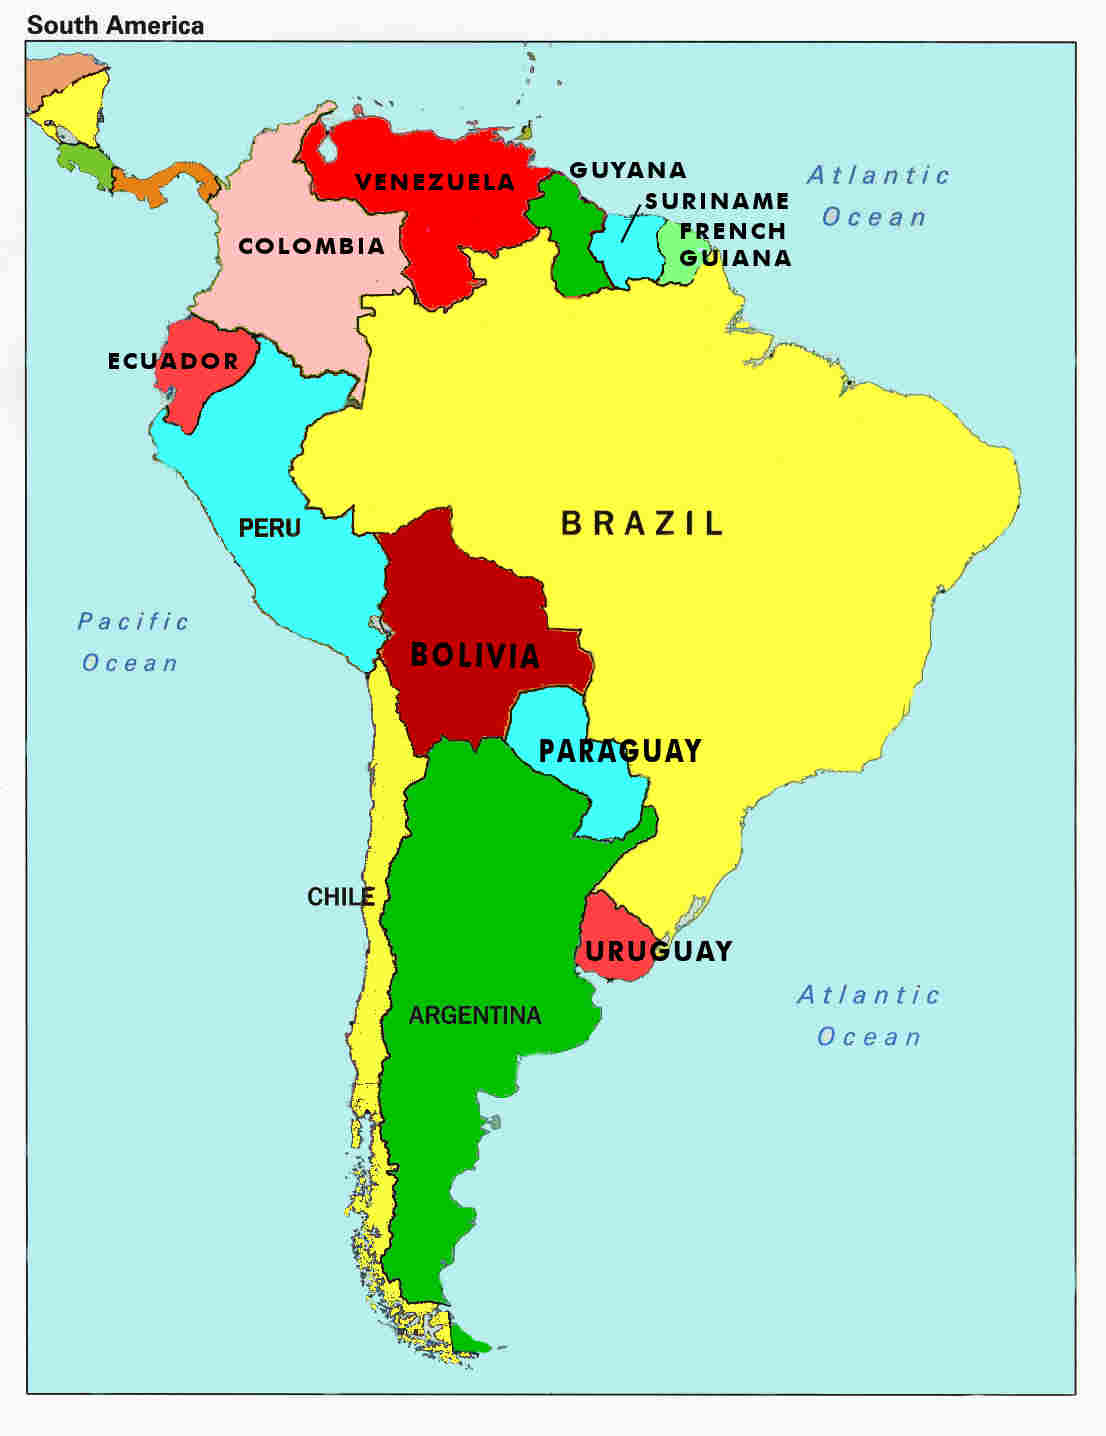 map of south america. locating countries on a map